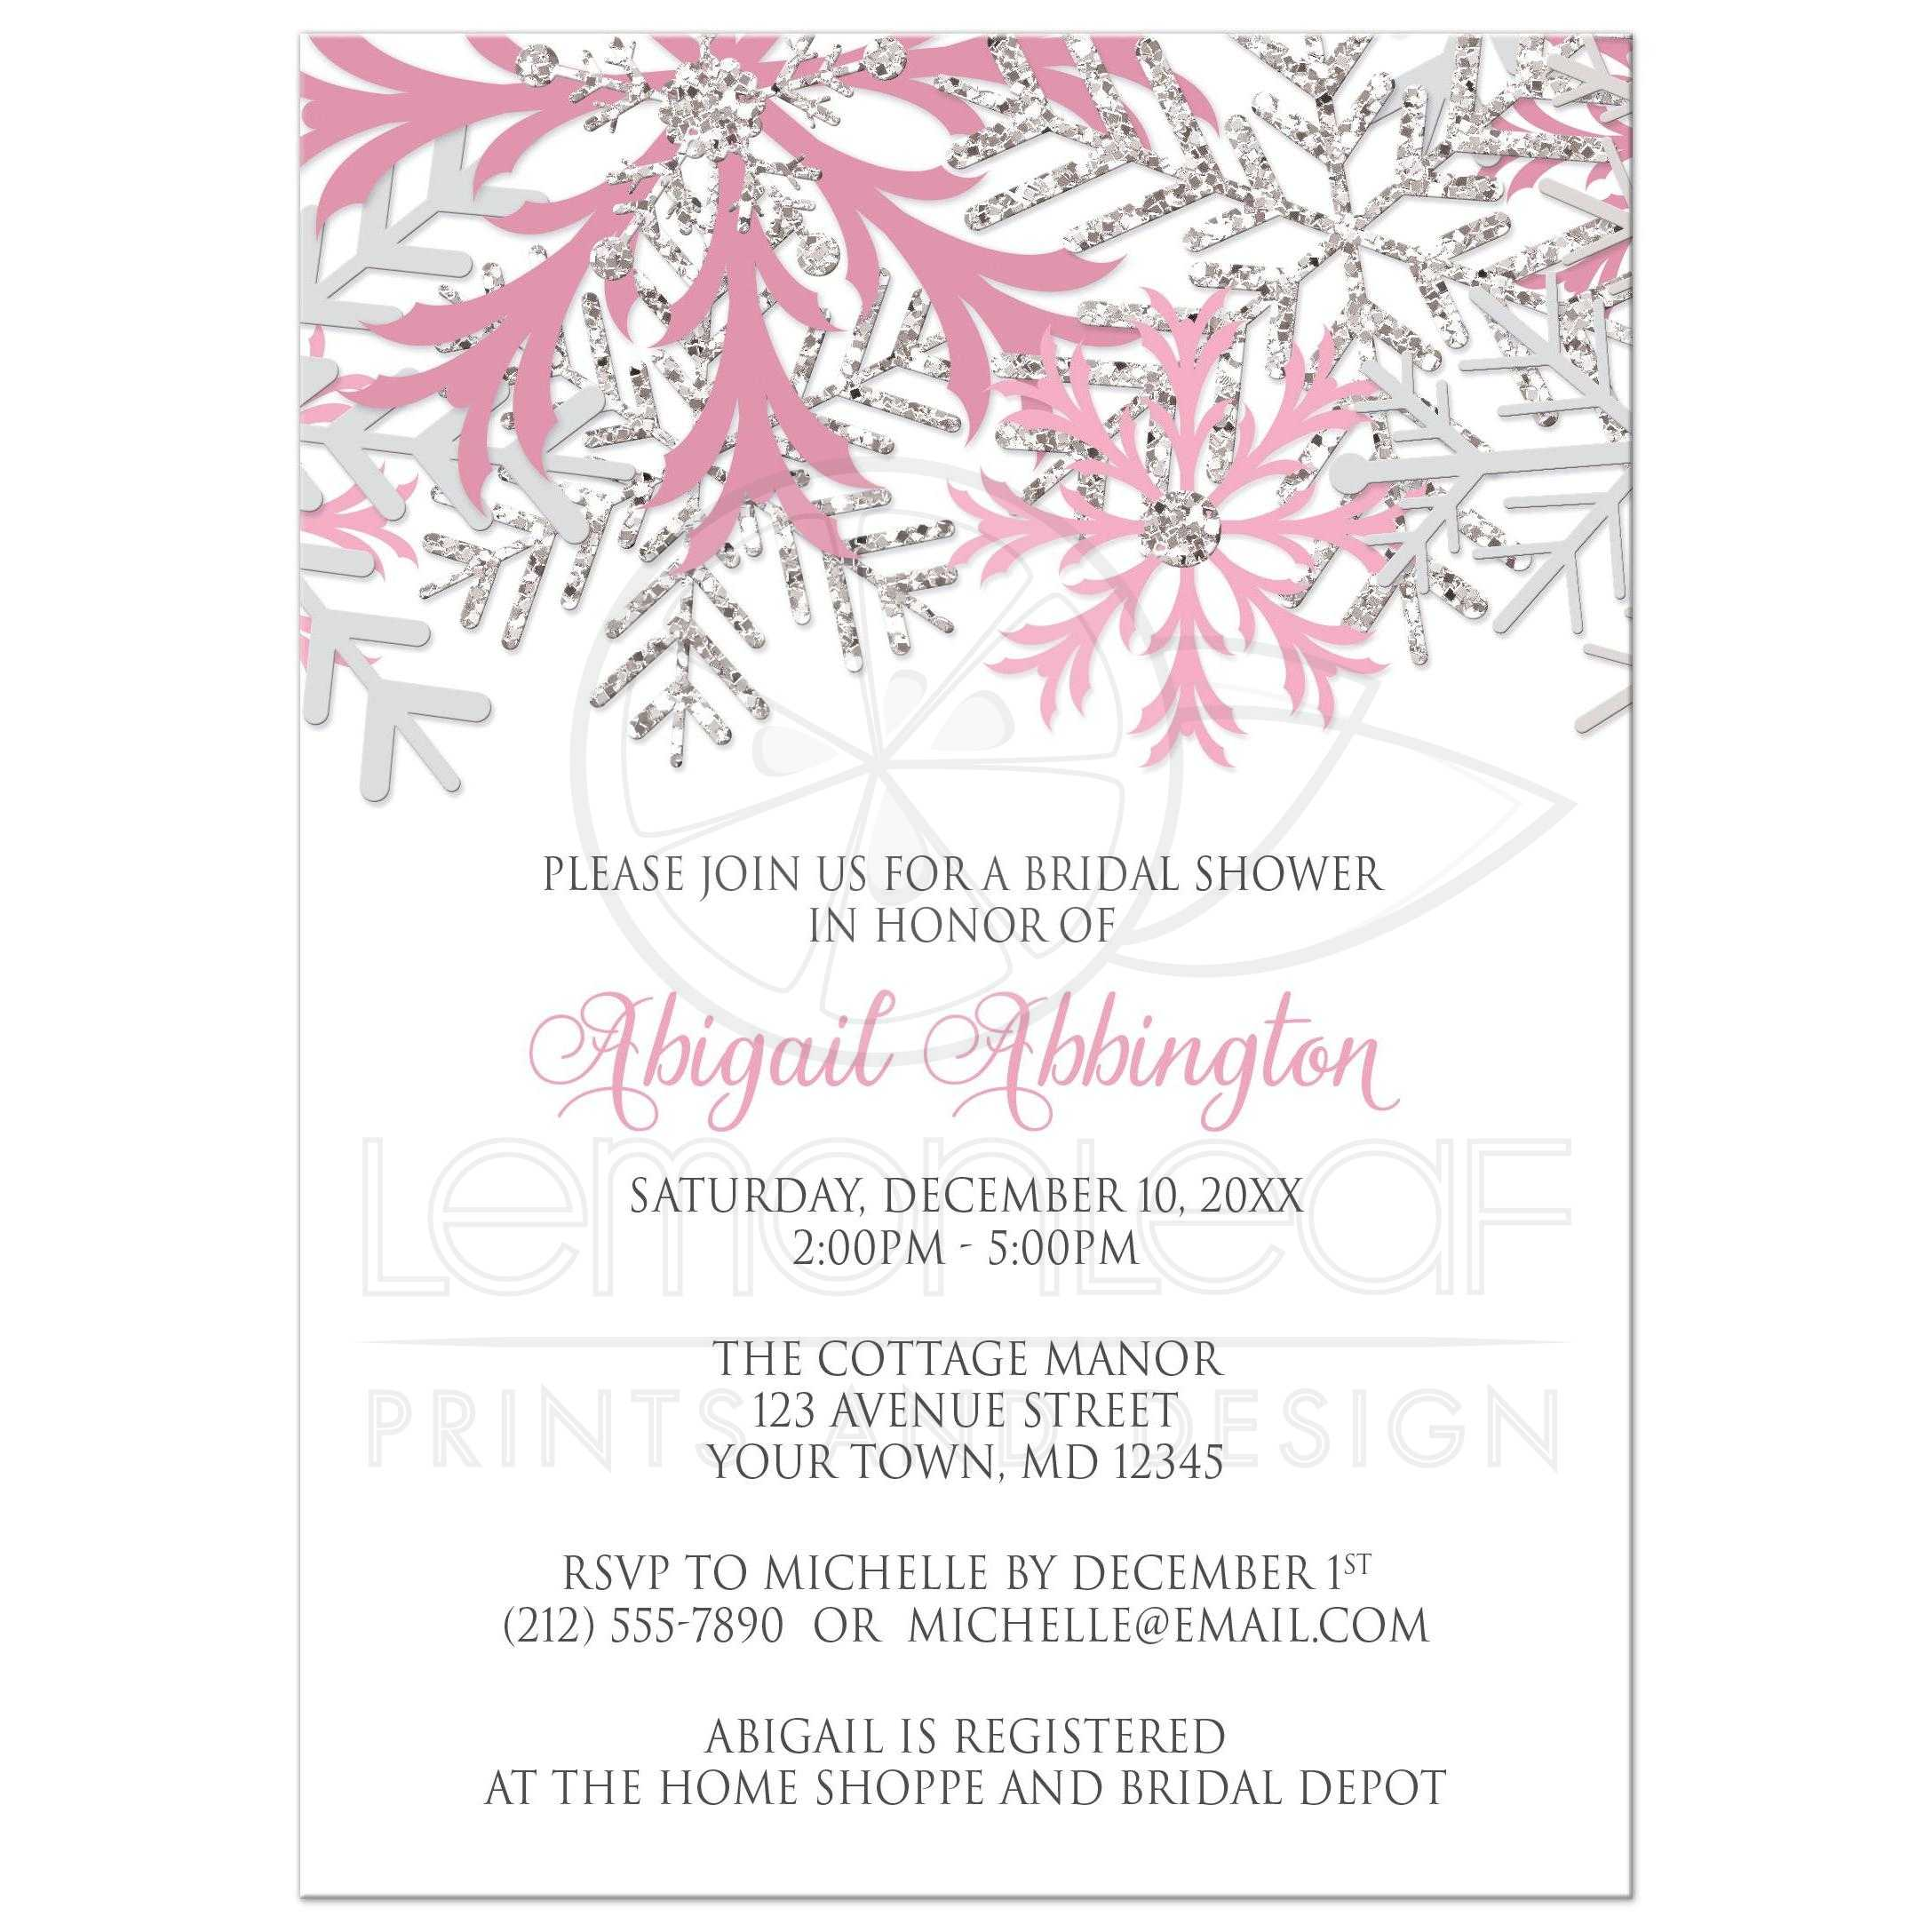 Shower invitations winter snowflake pink silver bridal shower invitations winter snowflake pink silver filmwisefo Choice Image